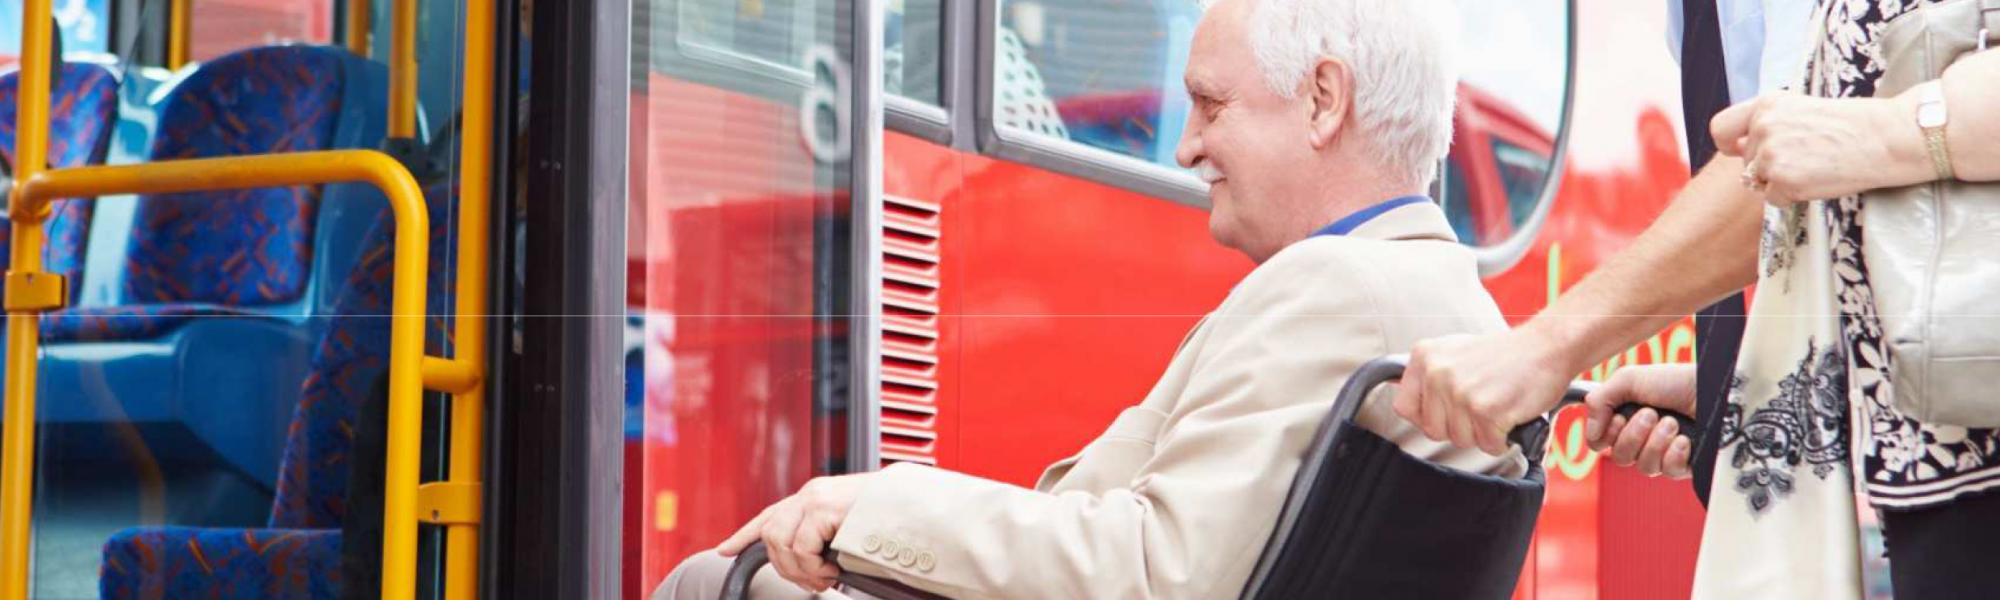 accessibility person in wheelchair getting on bus